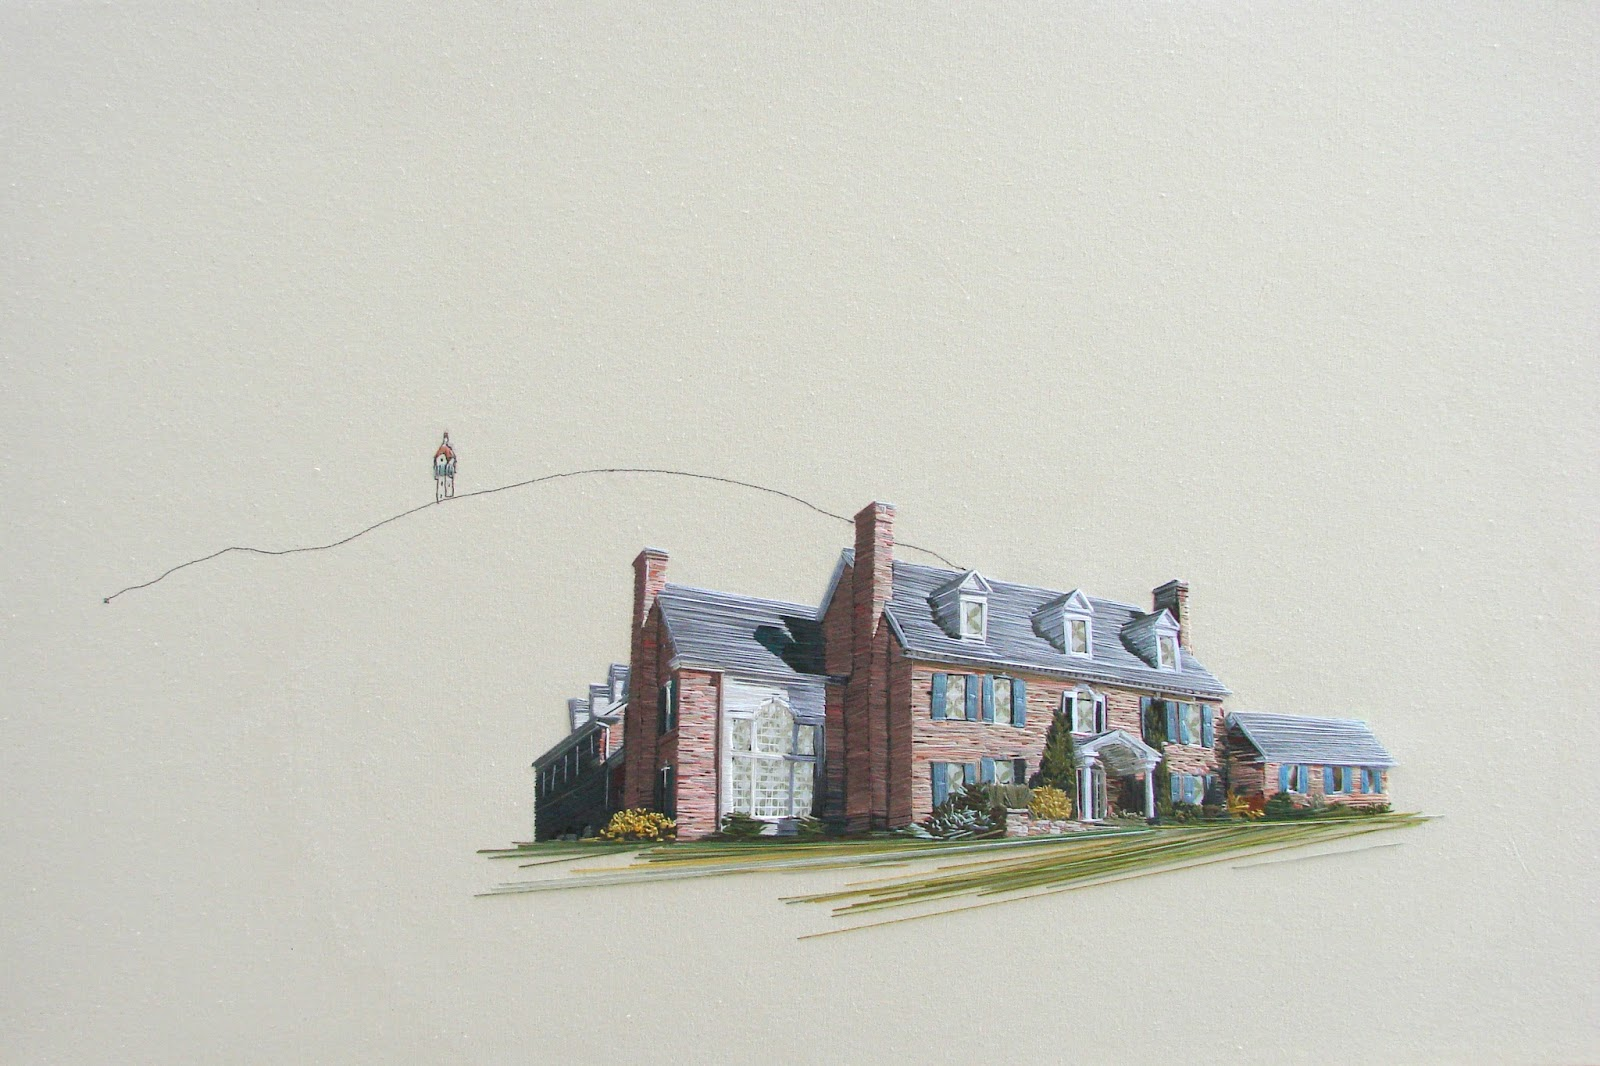 Stephanie Clark - Droppo Dwellings - Hand Embroidery on Canvas